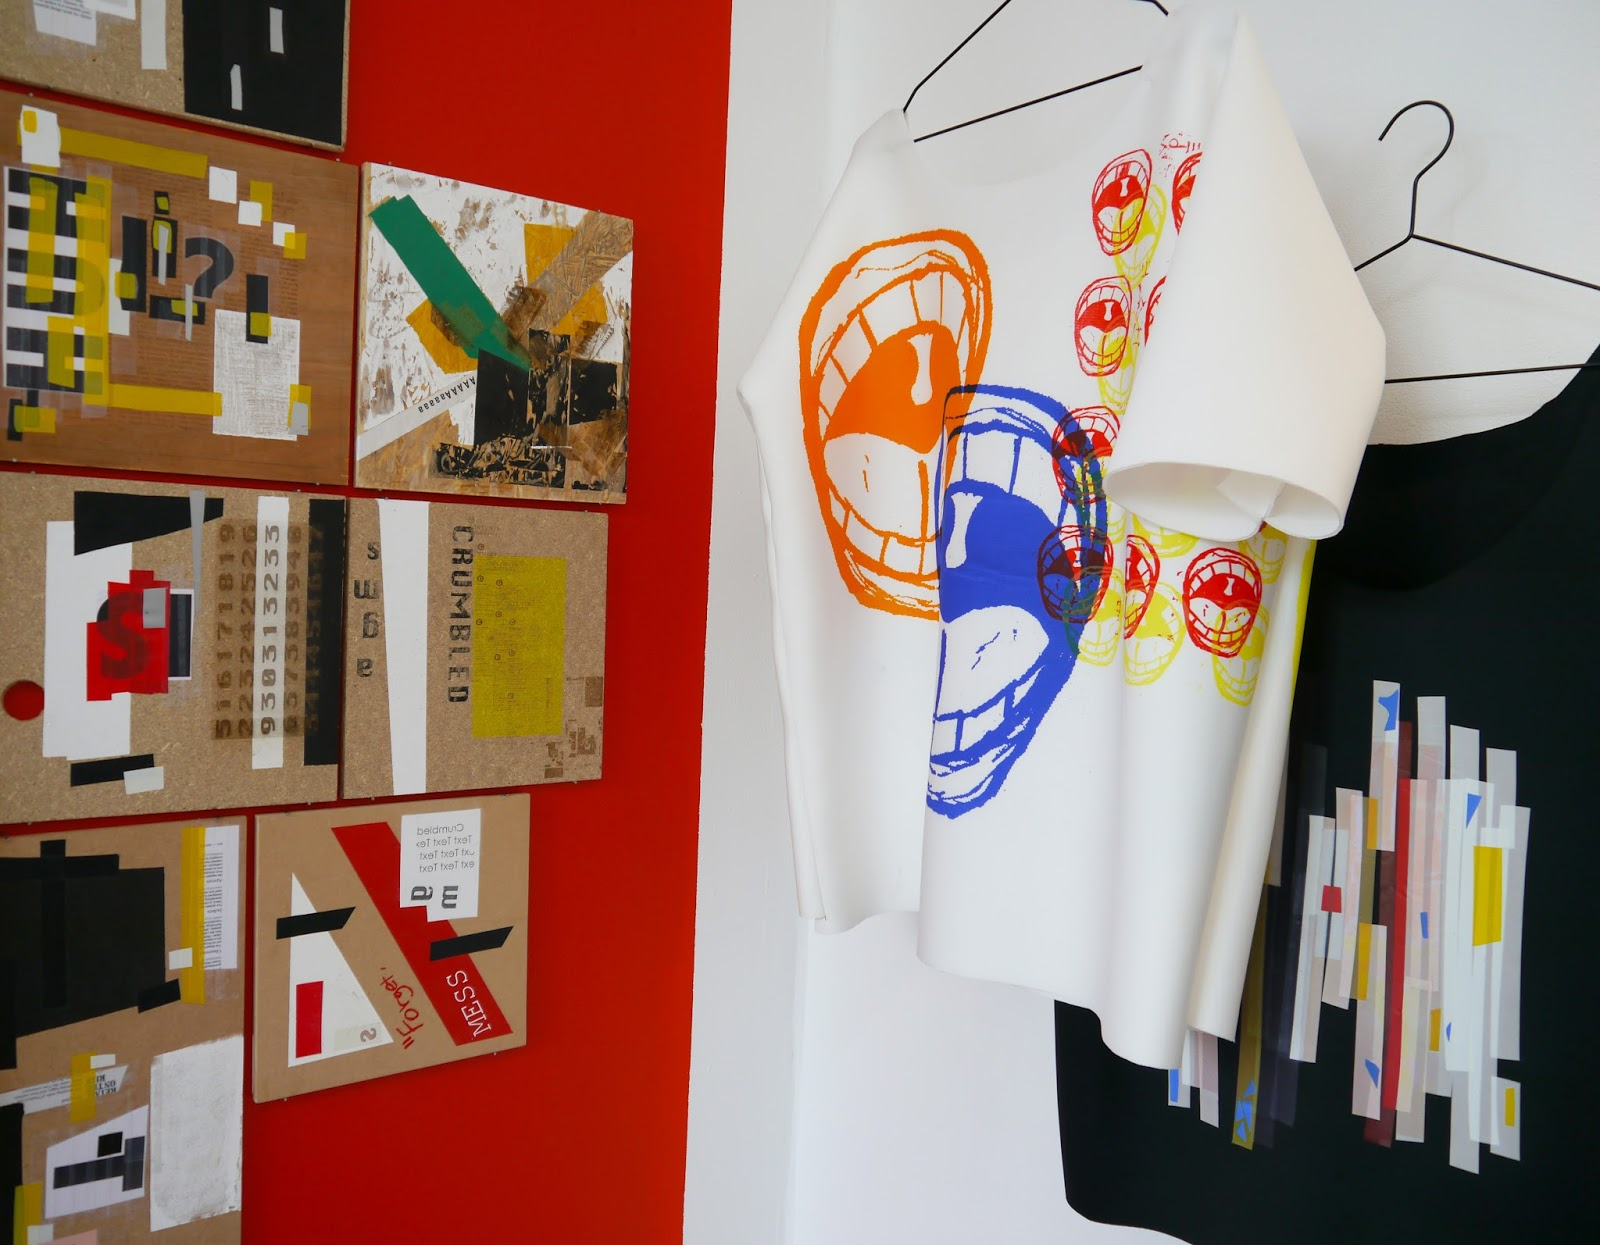 DJCAD, Duncan of Jordanstone College of Art and Design, degree show, Dundee, degree show 2015, #djcaddegreeshow, #djcaddegreeshow15, textile design, printed fabric, streetwear, city design, Lewis Scott